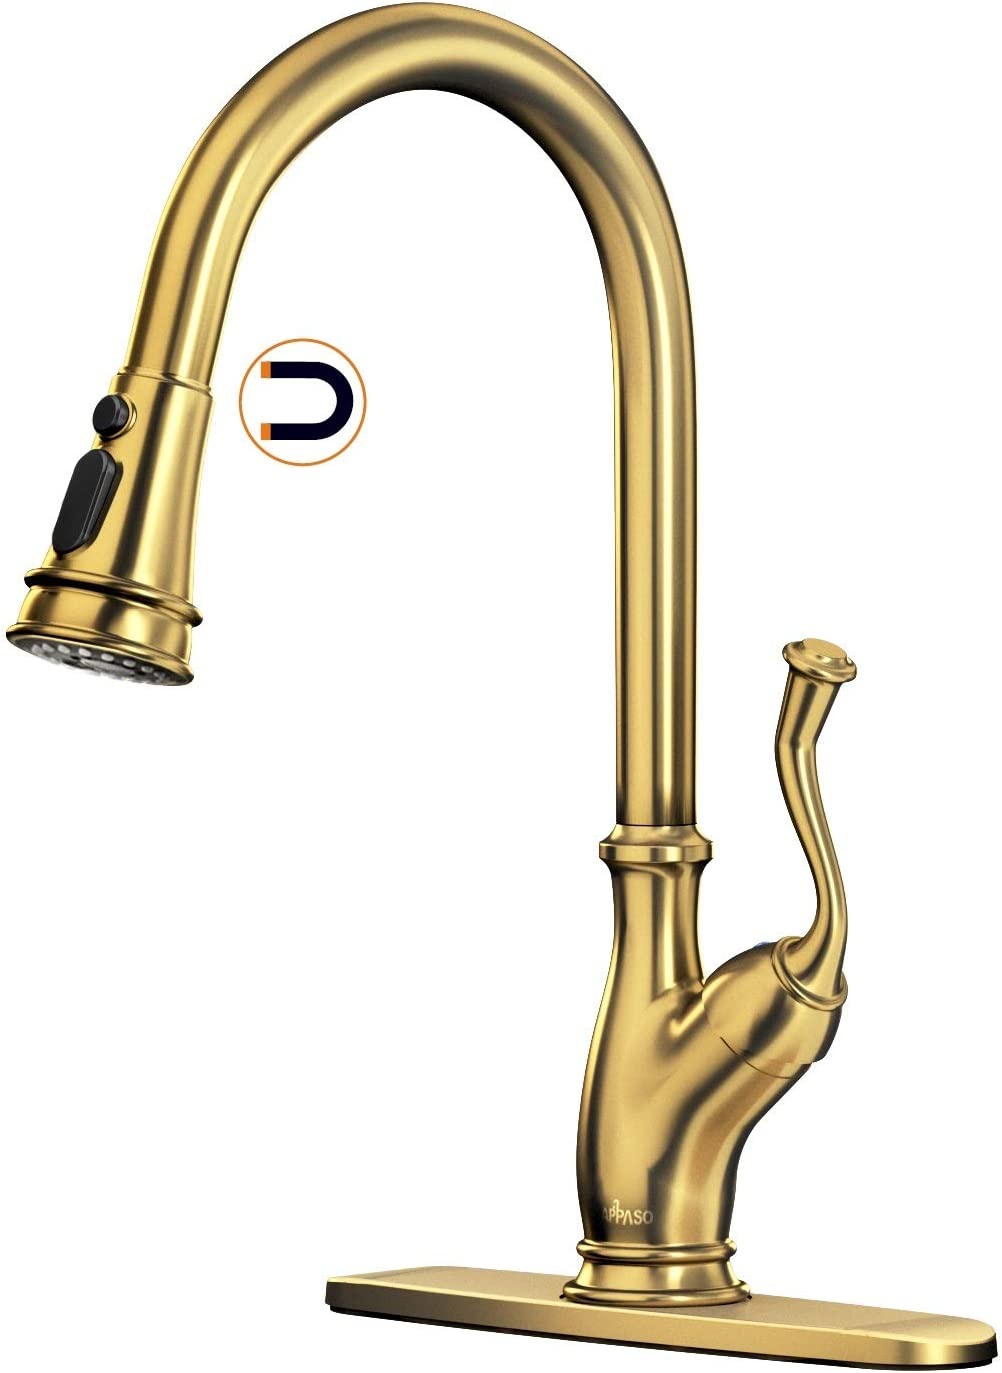 APPASO Brushed Gold Pull Down Kitchen Faucet with Magnetic Docking Sprayer - Solid Brass Single Handle 1 Hole High Arc Pull Out Kitchen Sink Faucets, Champagne Copper, APS175BTG